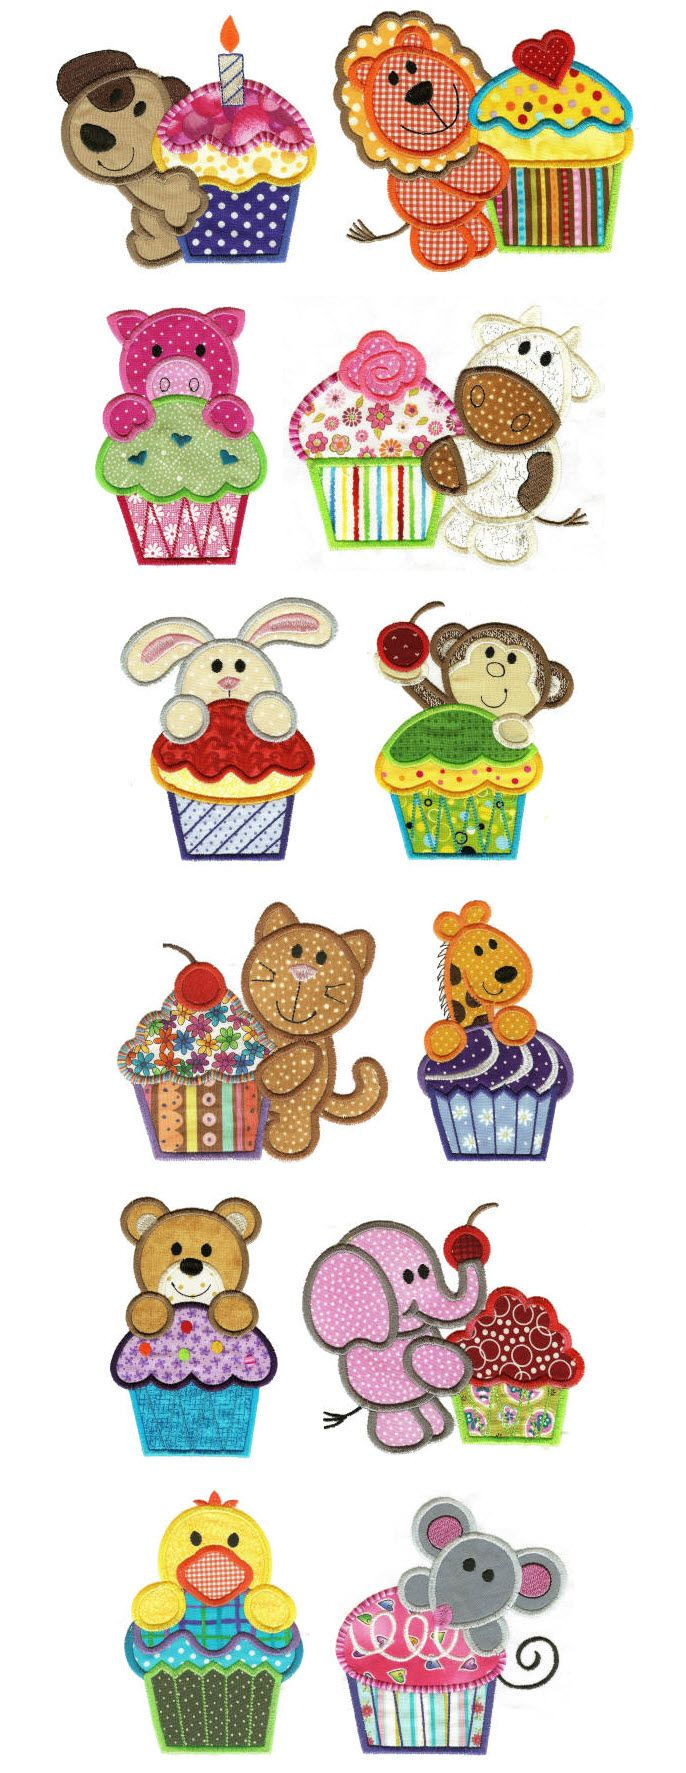 Embroidery Designs | Applique Machine Embroidery Designs | Cupcake Critters Applique